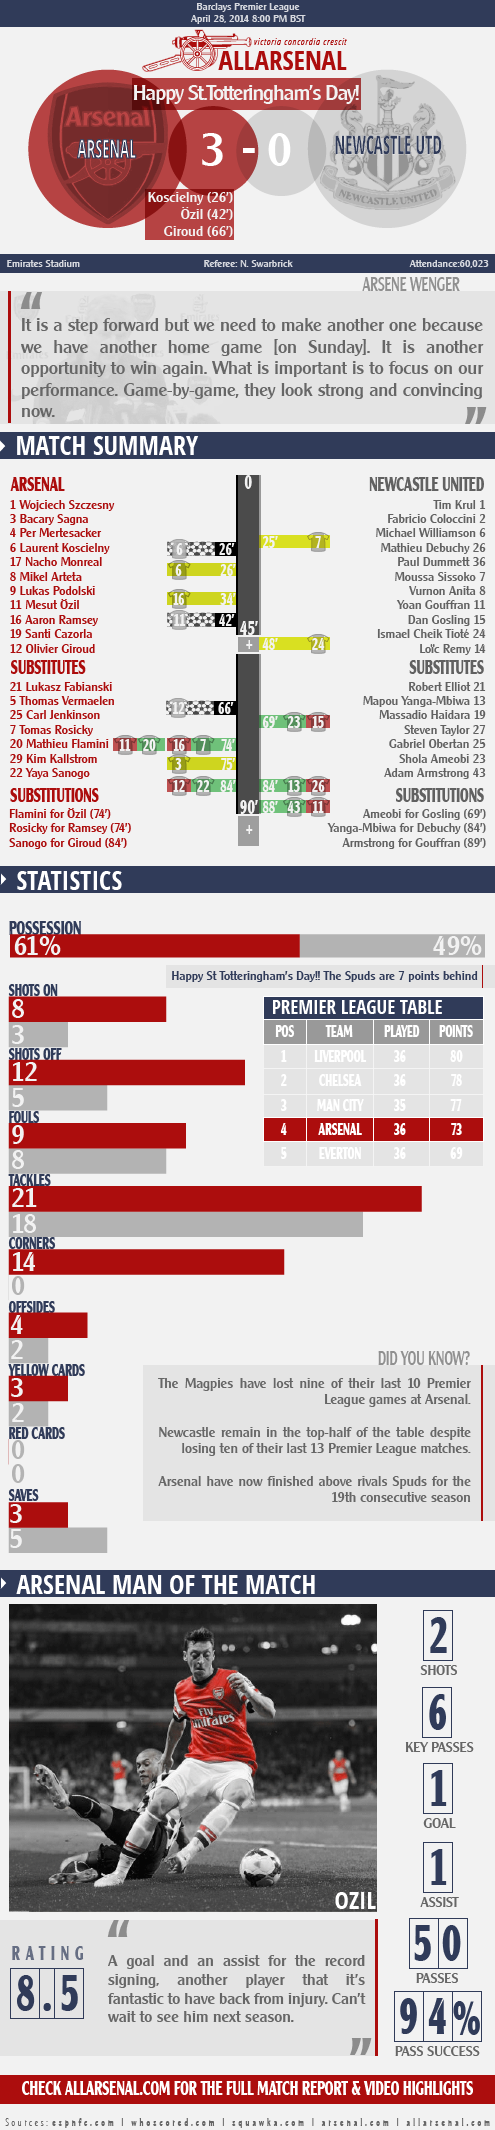 arsenal3-0newcastle-allarsenalinfographic-01